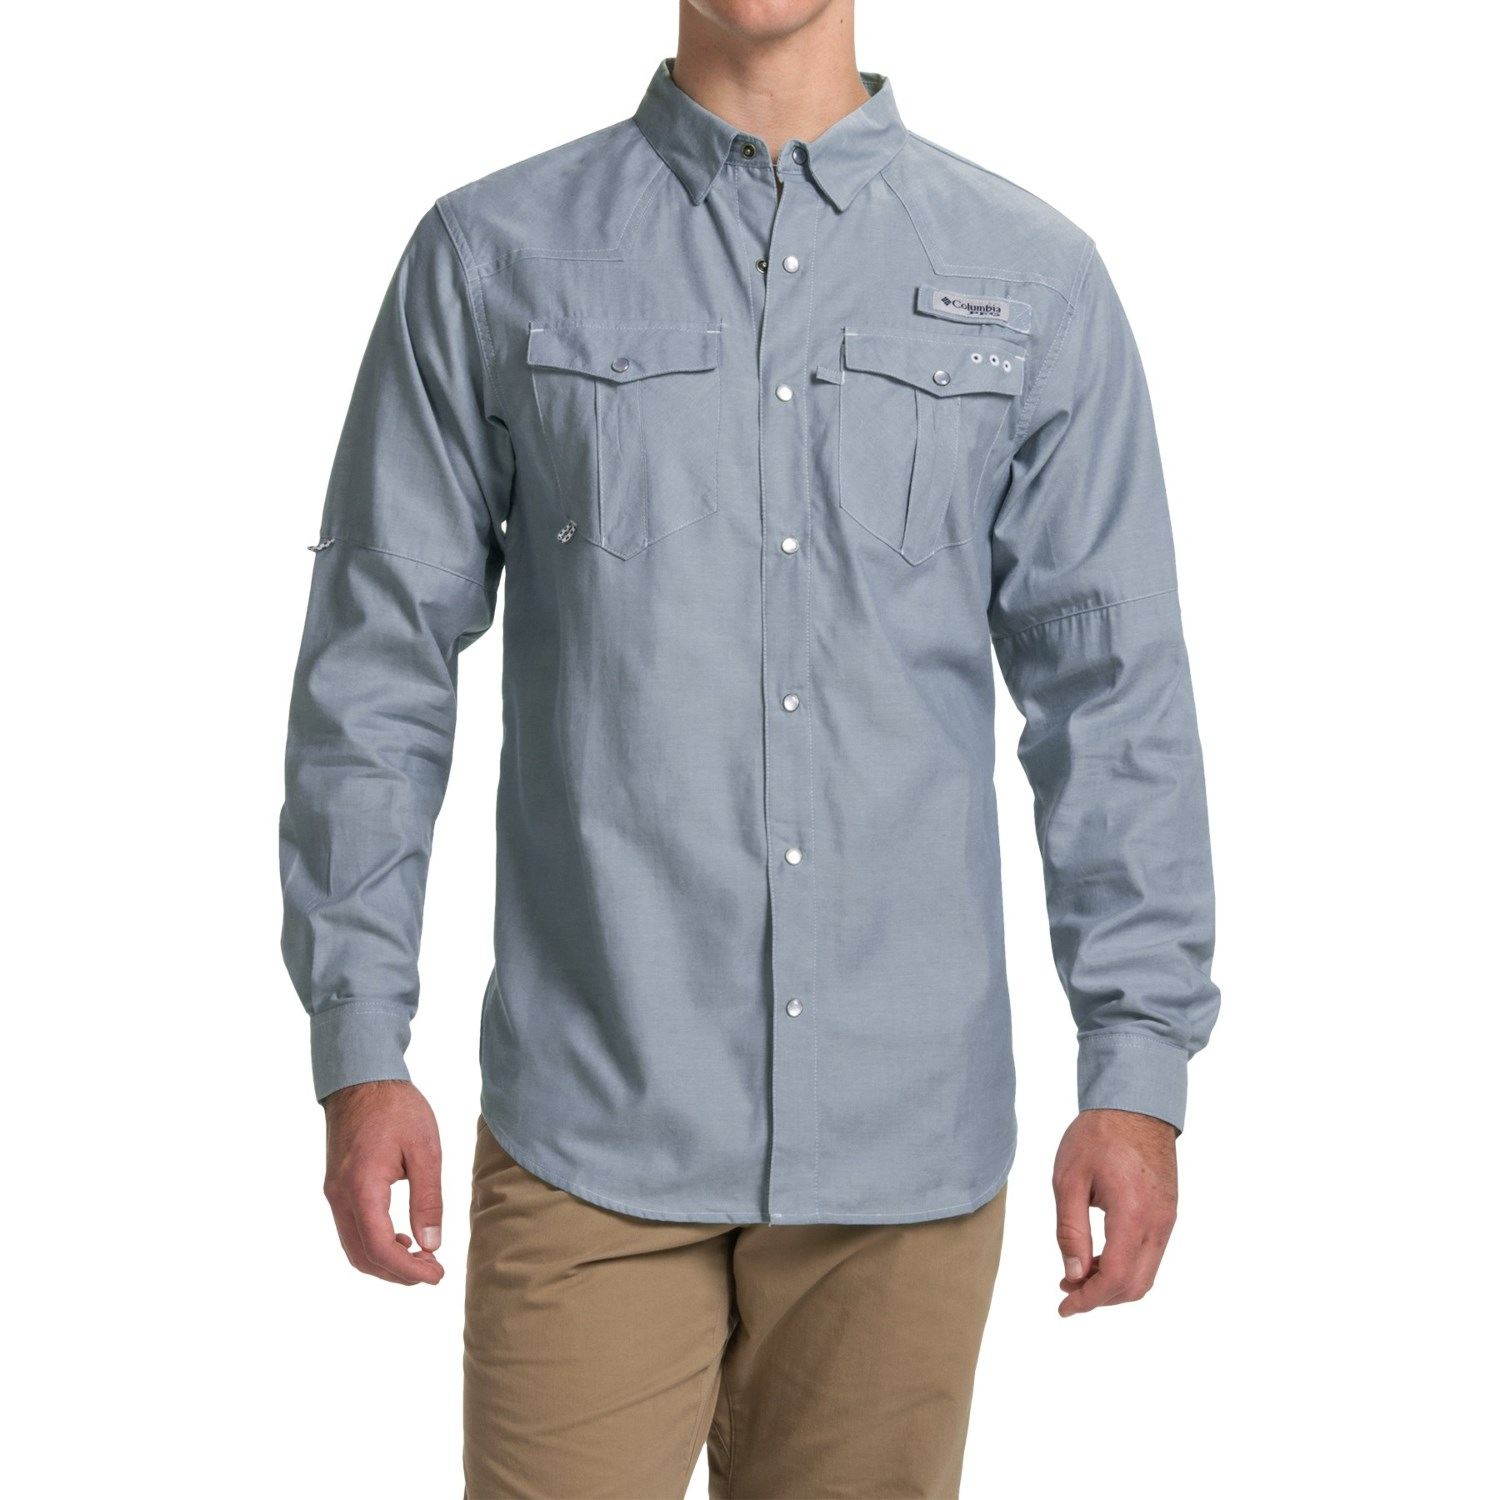 Columbia sportswear pfg beadhead oxford shirt for men for Columbia shirts womens pfg